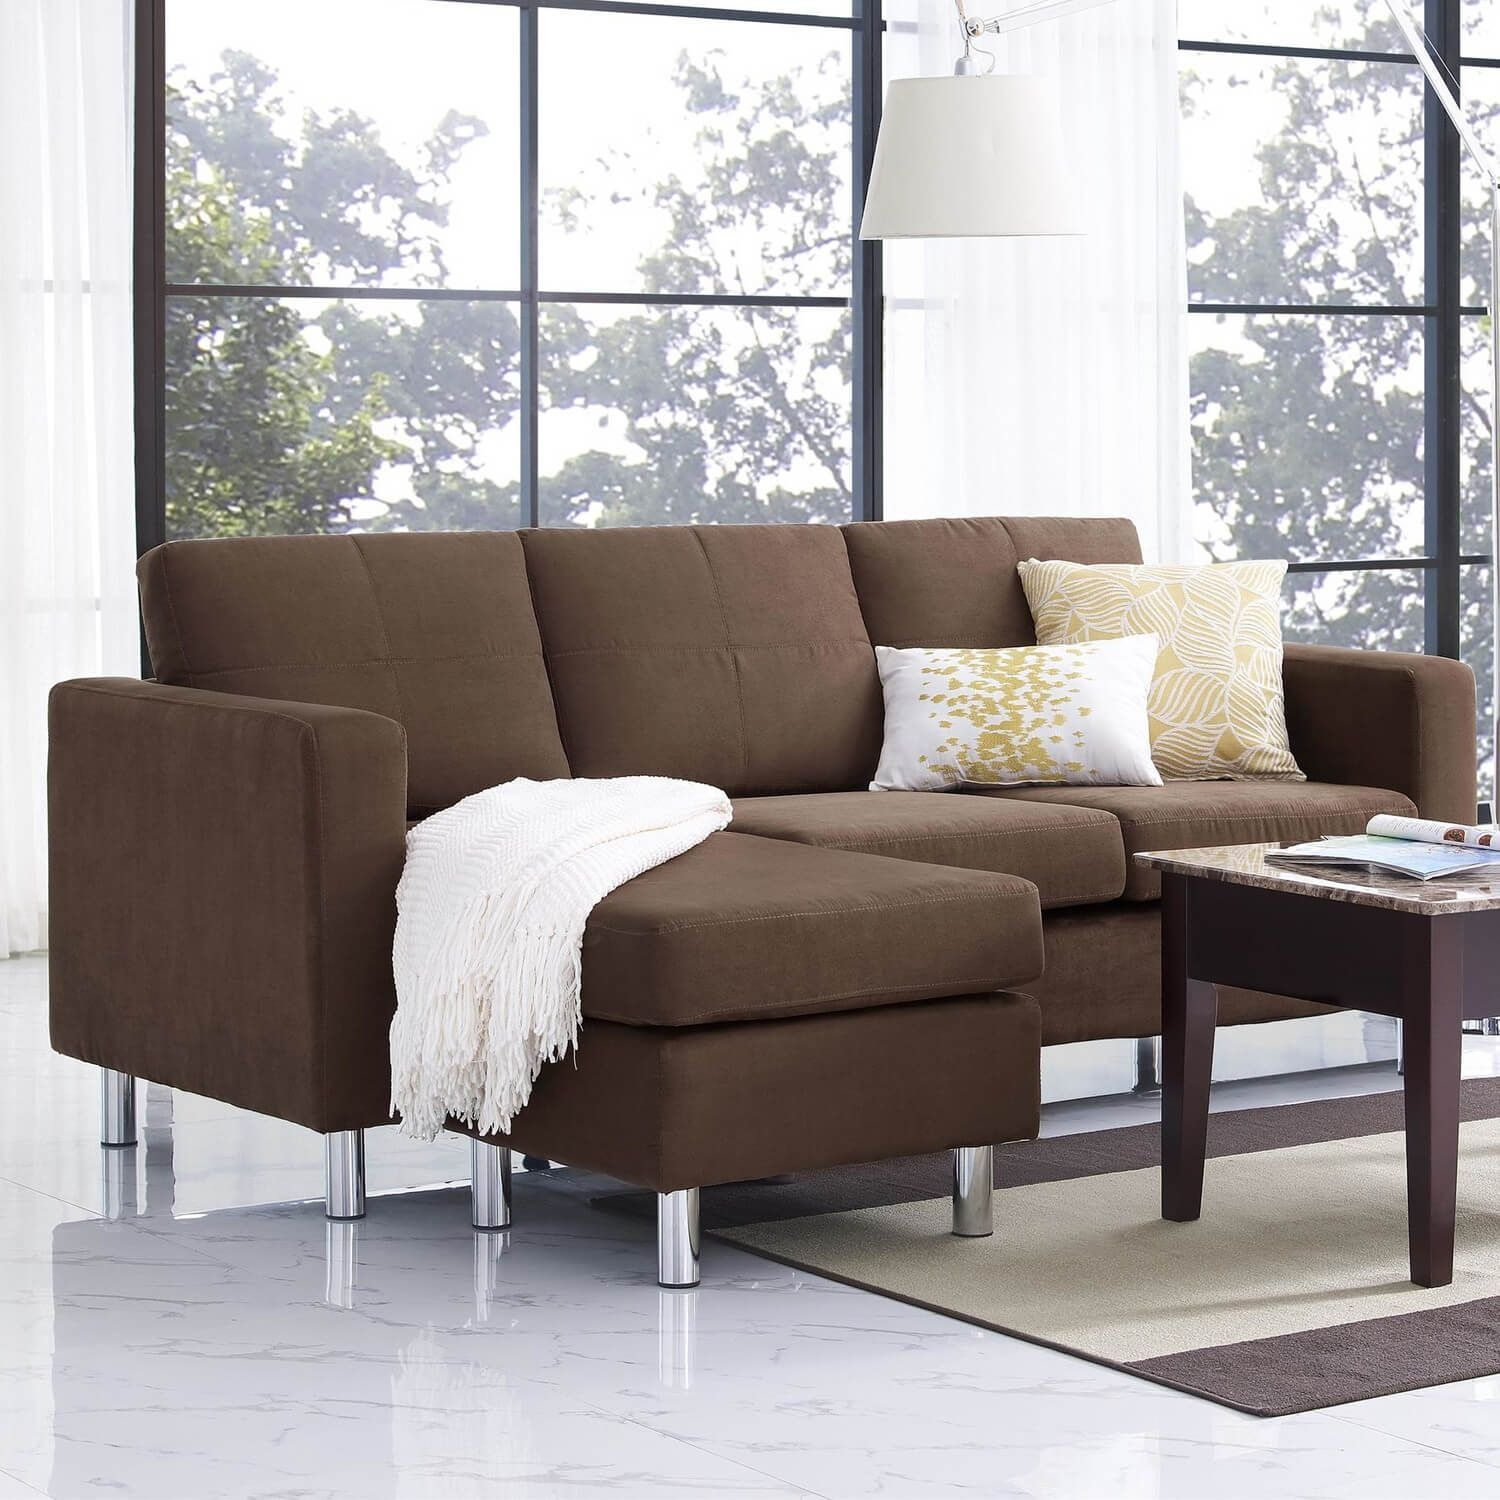 Cool Sectional Couch Under 500  Great Sectional Couch Under 500 16 For Your Living Room